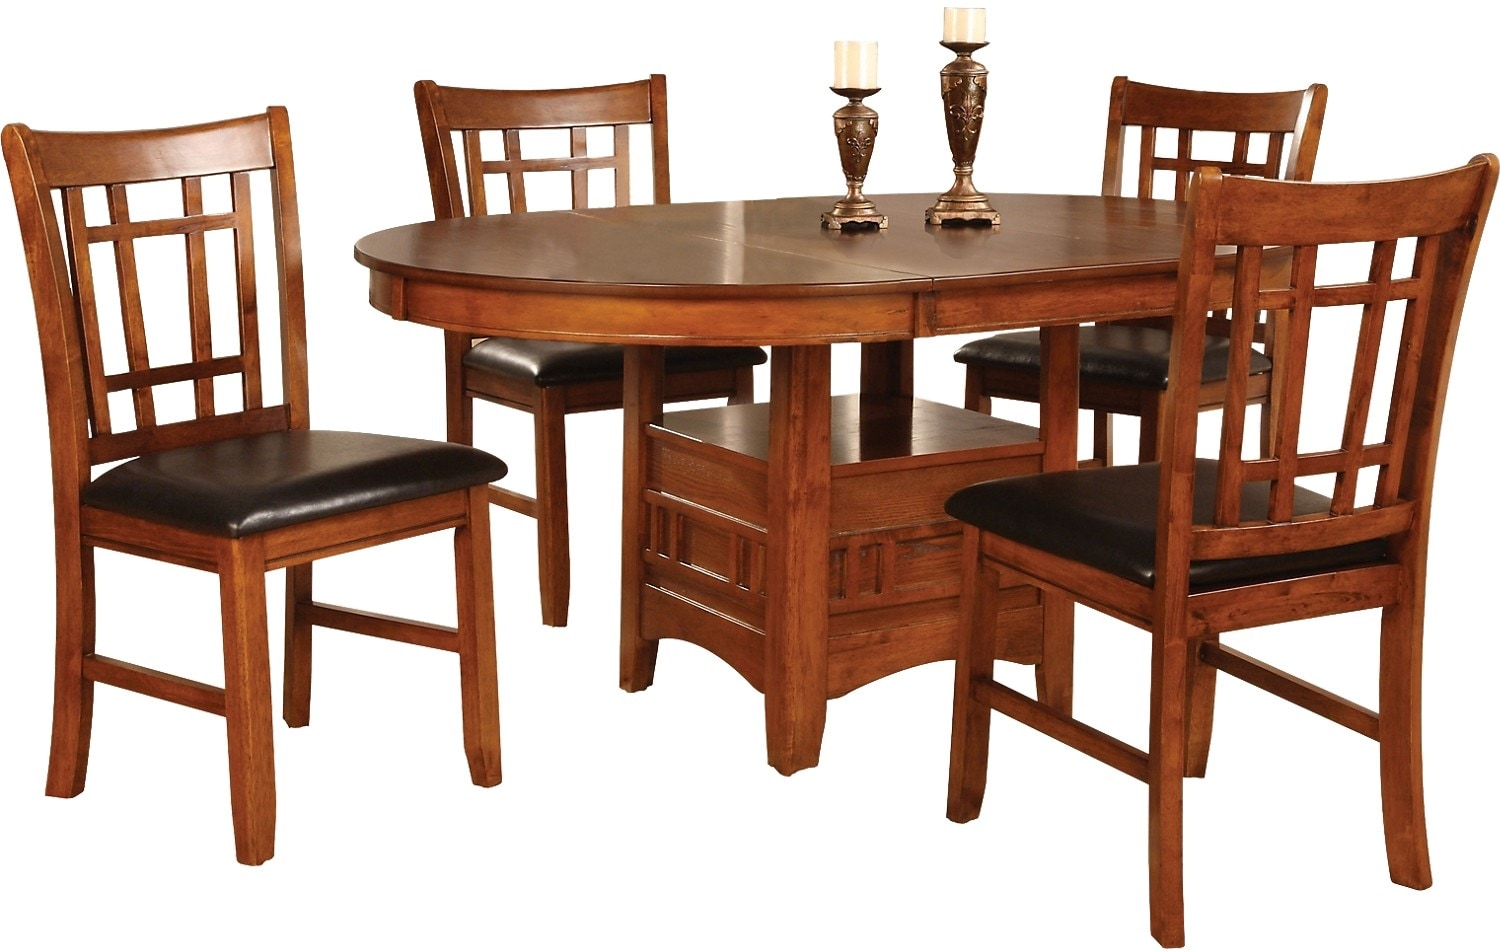 Dalton 5 Piece Oak Dining Package